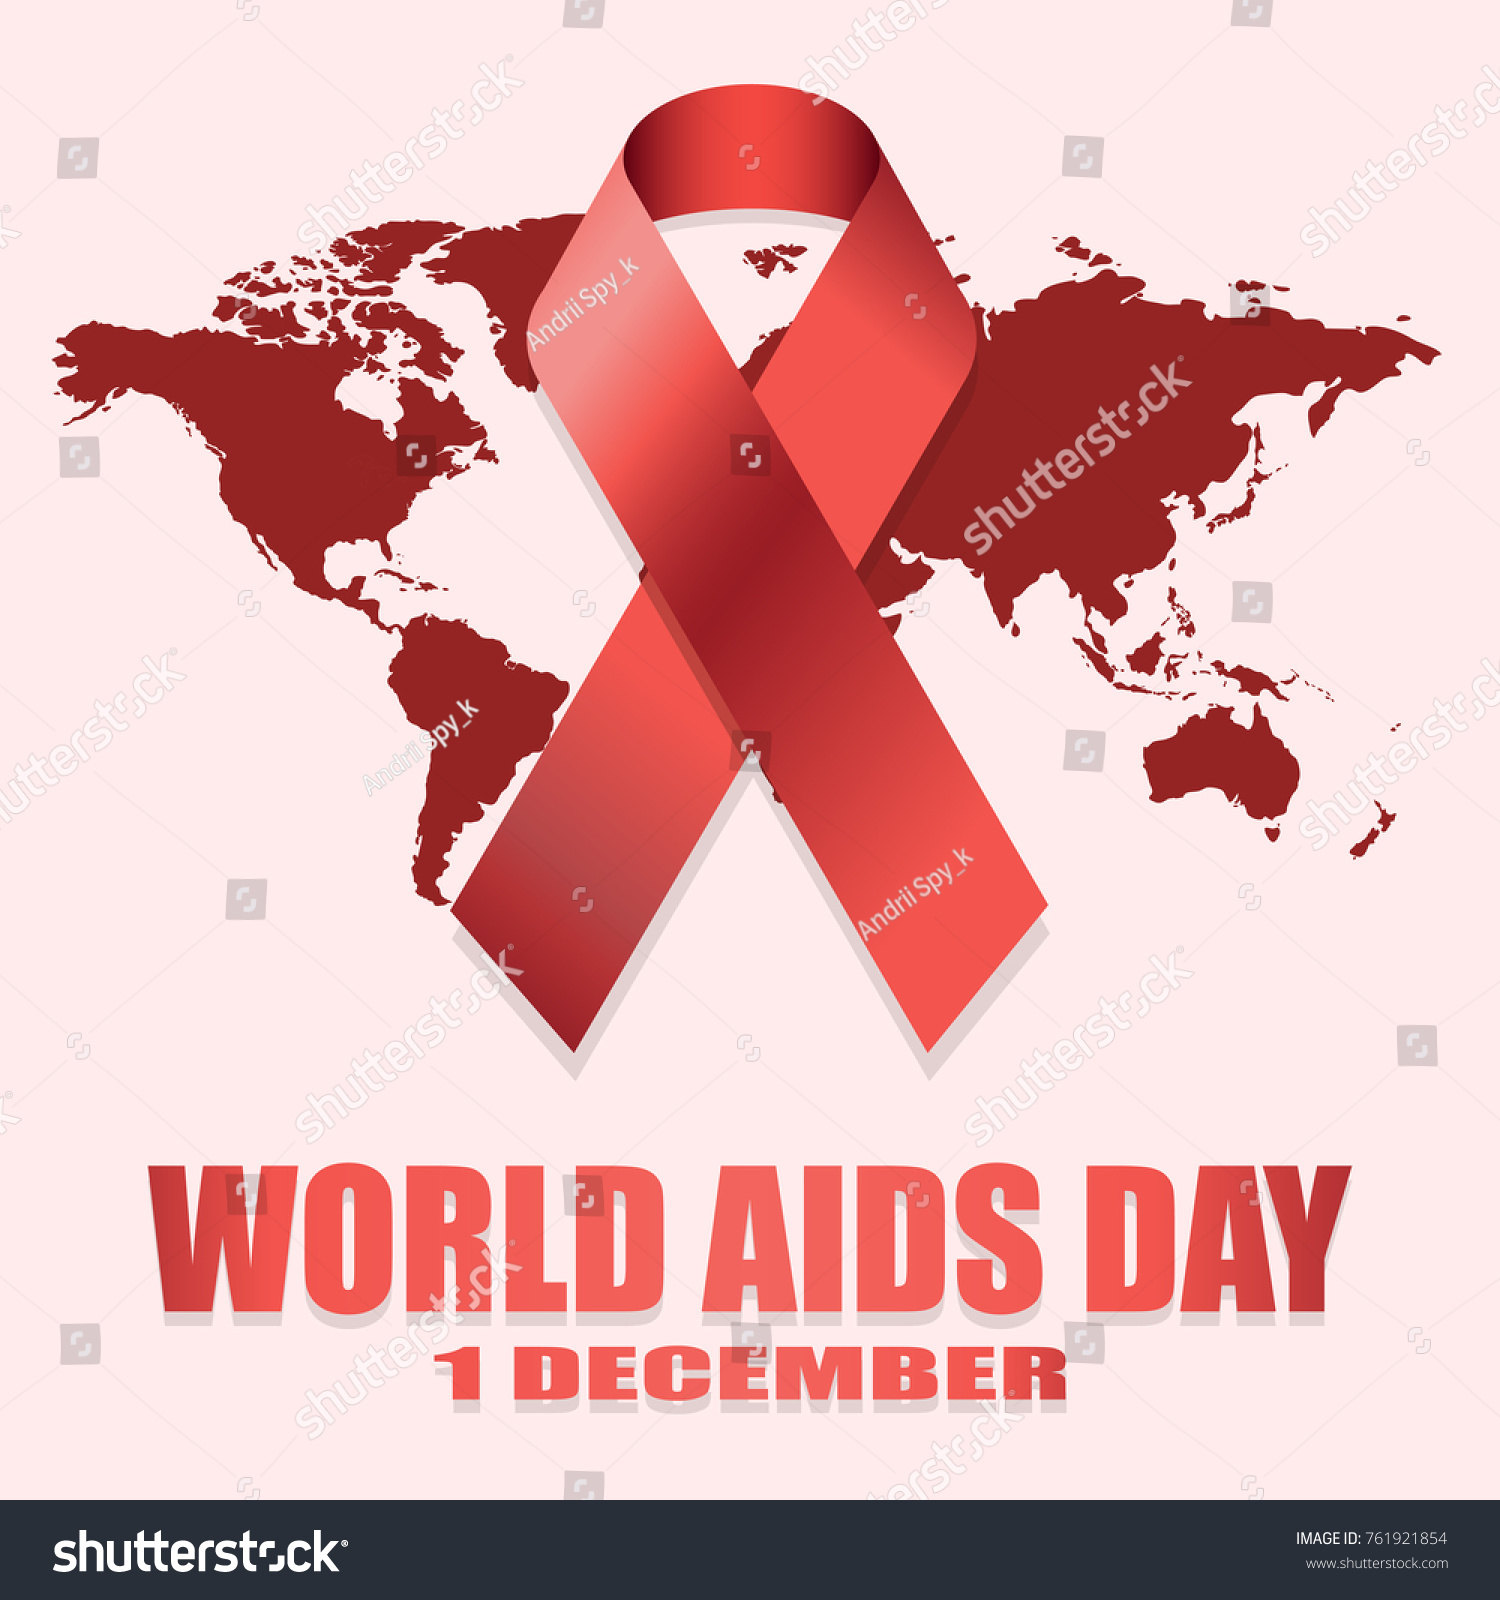 World aids day 1st december world stock vector 761921854 world aids day 1st december world aids day poster with with red world map gumiabroncs Gallery